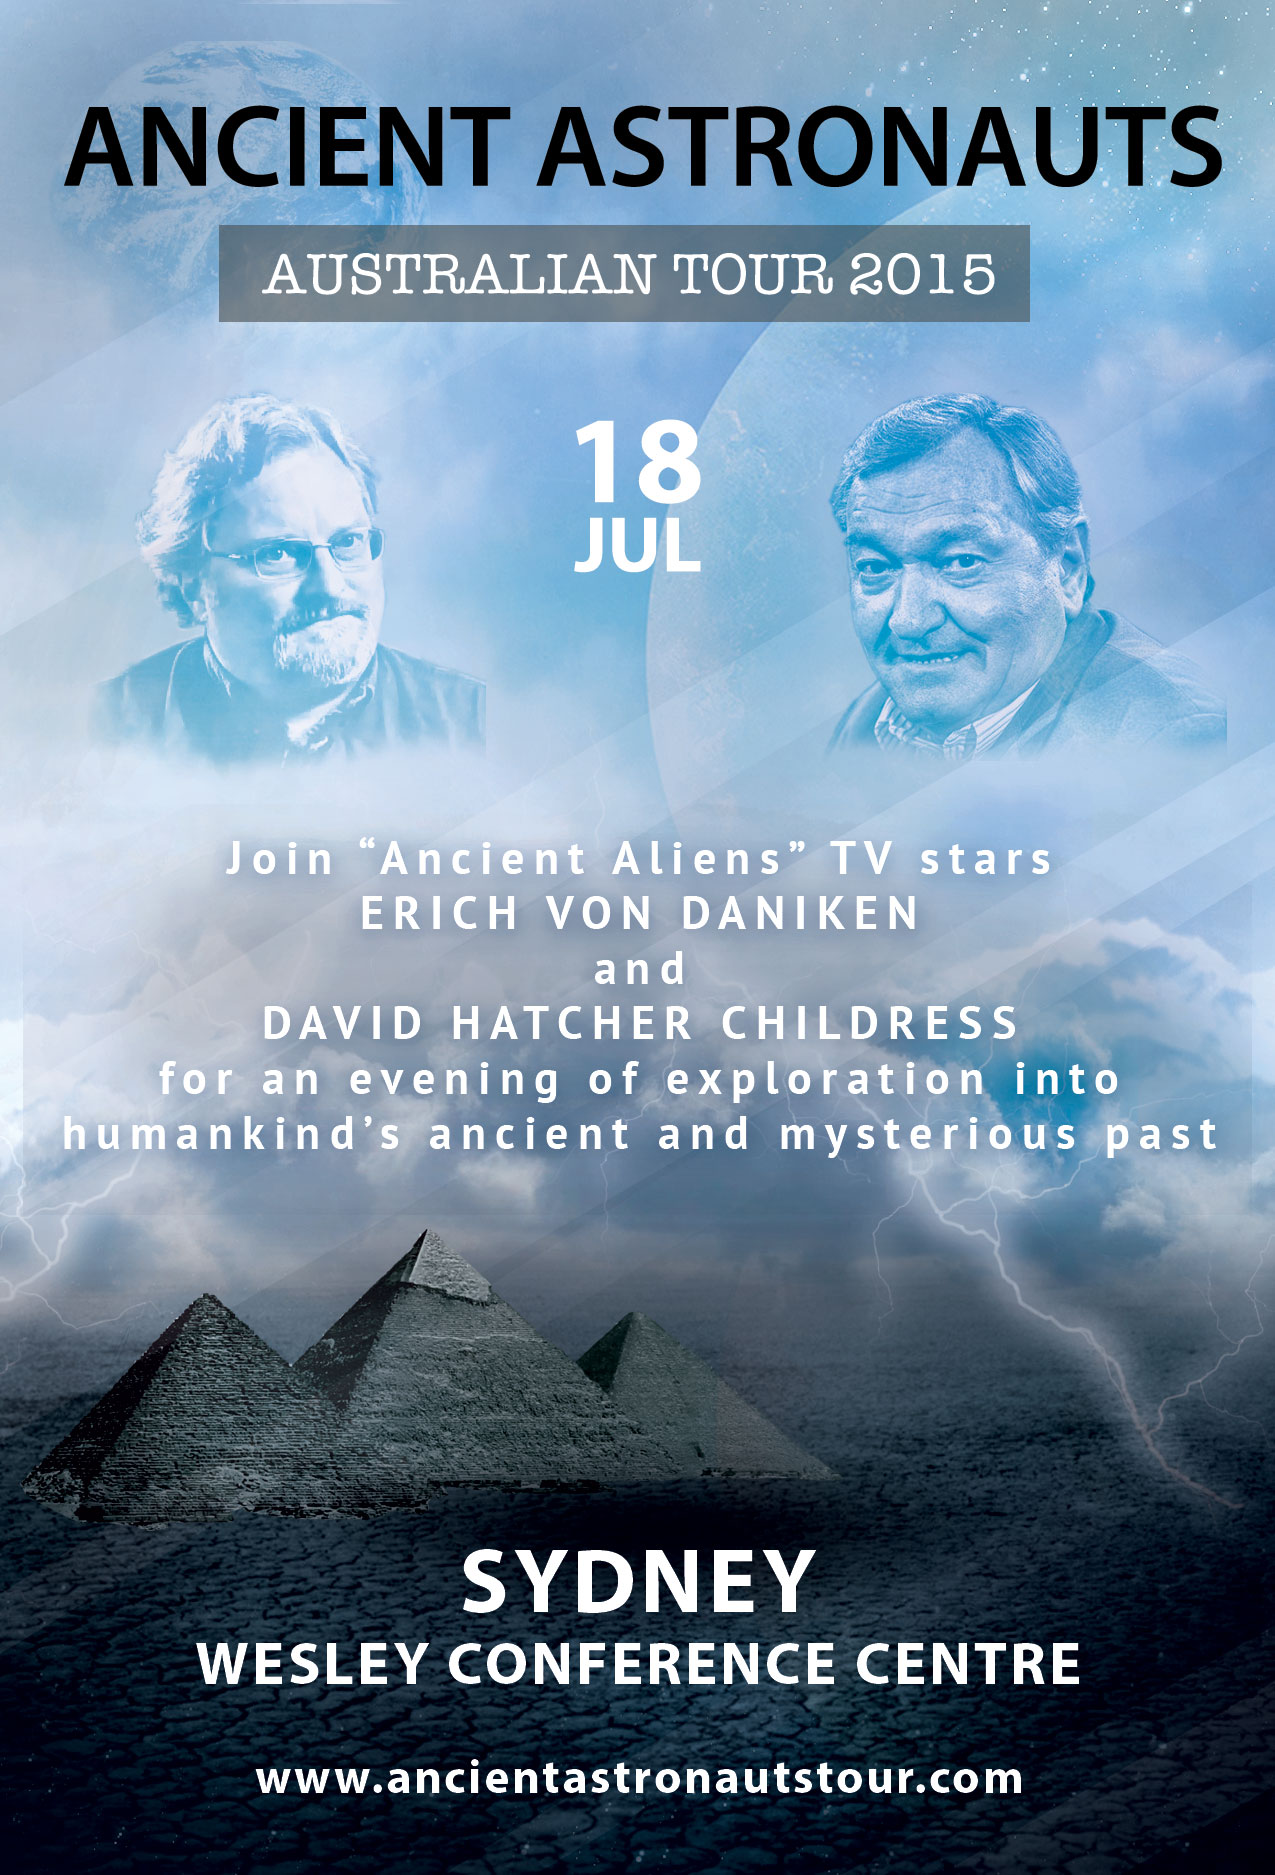 Two Ancient Aliens Landing In Australia This July!